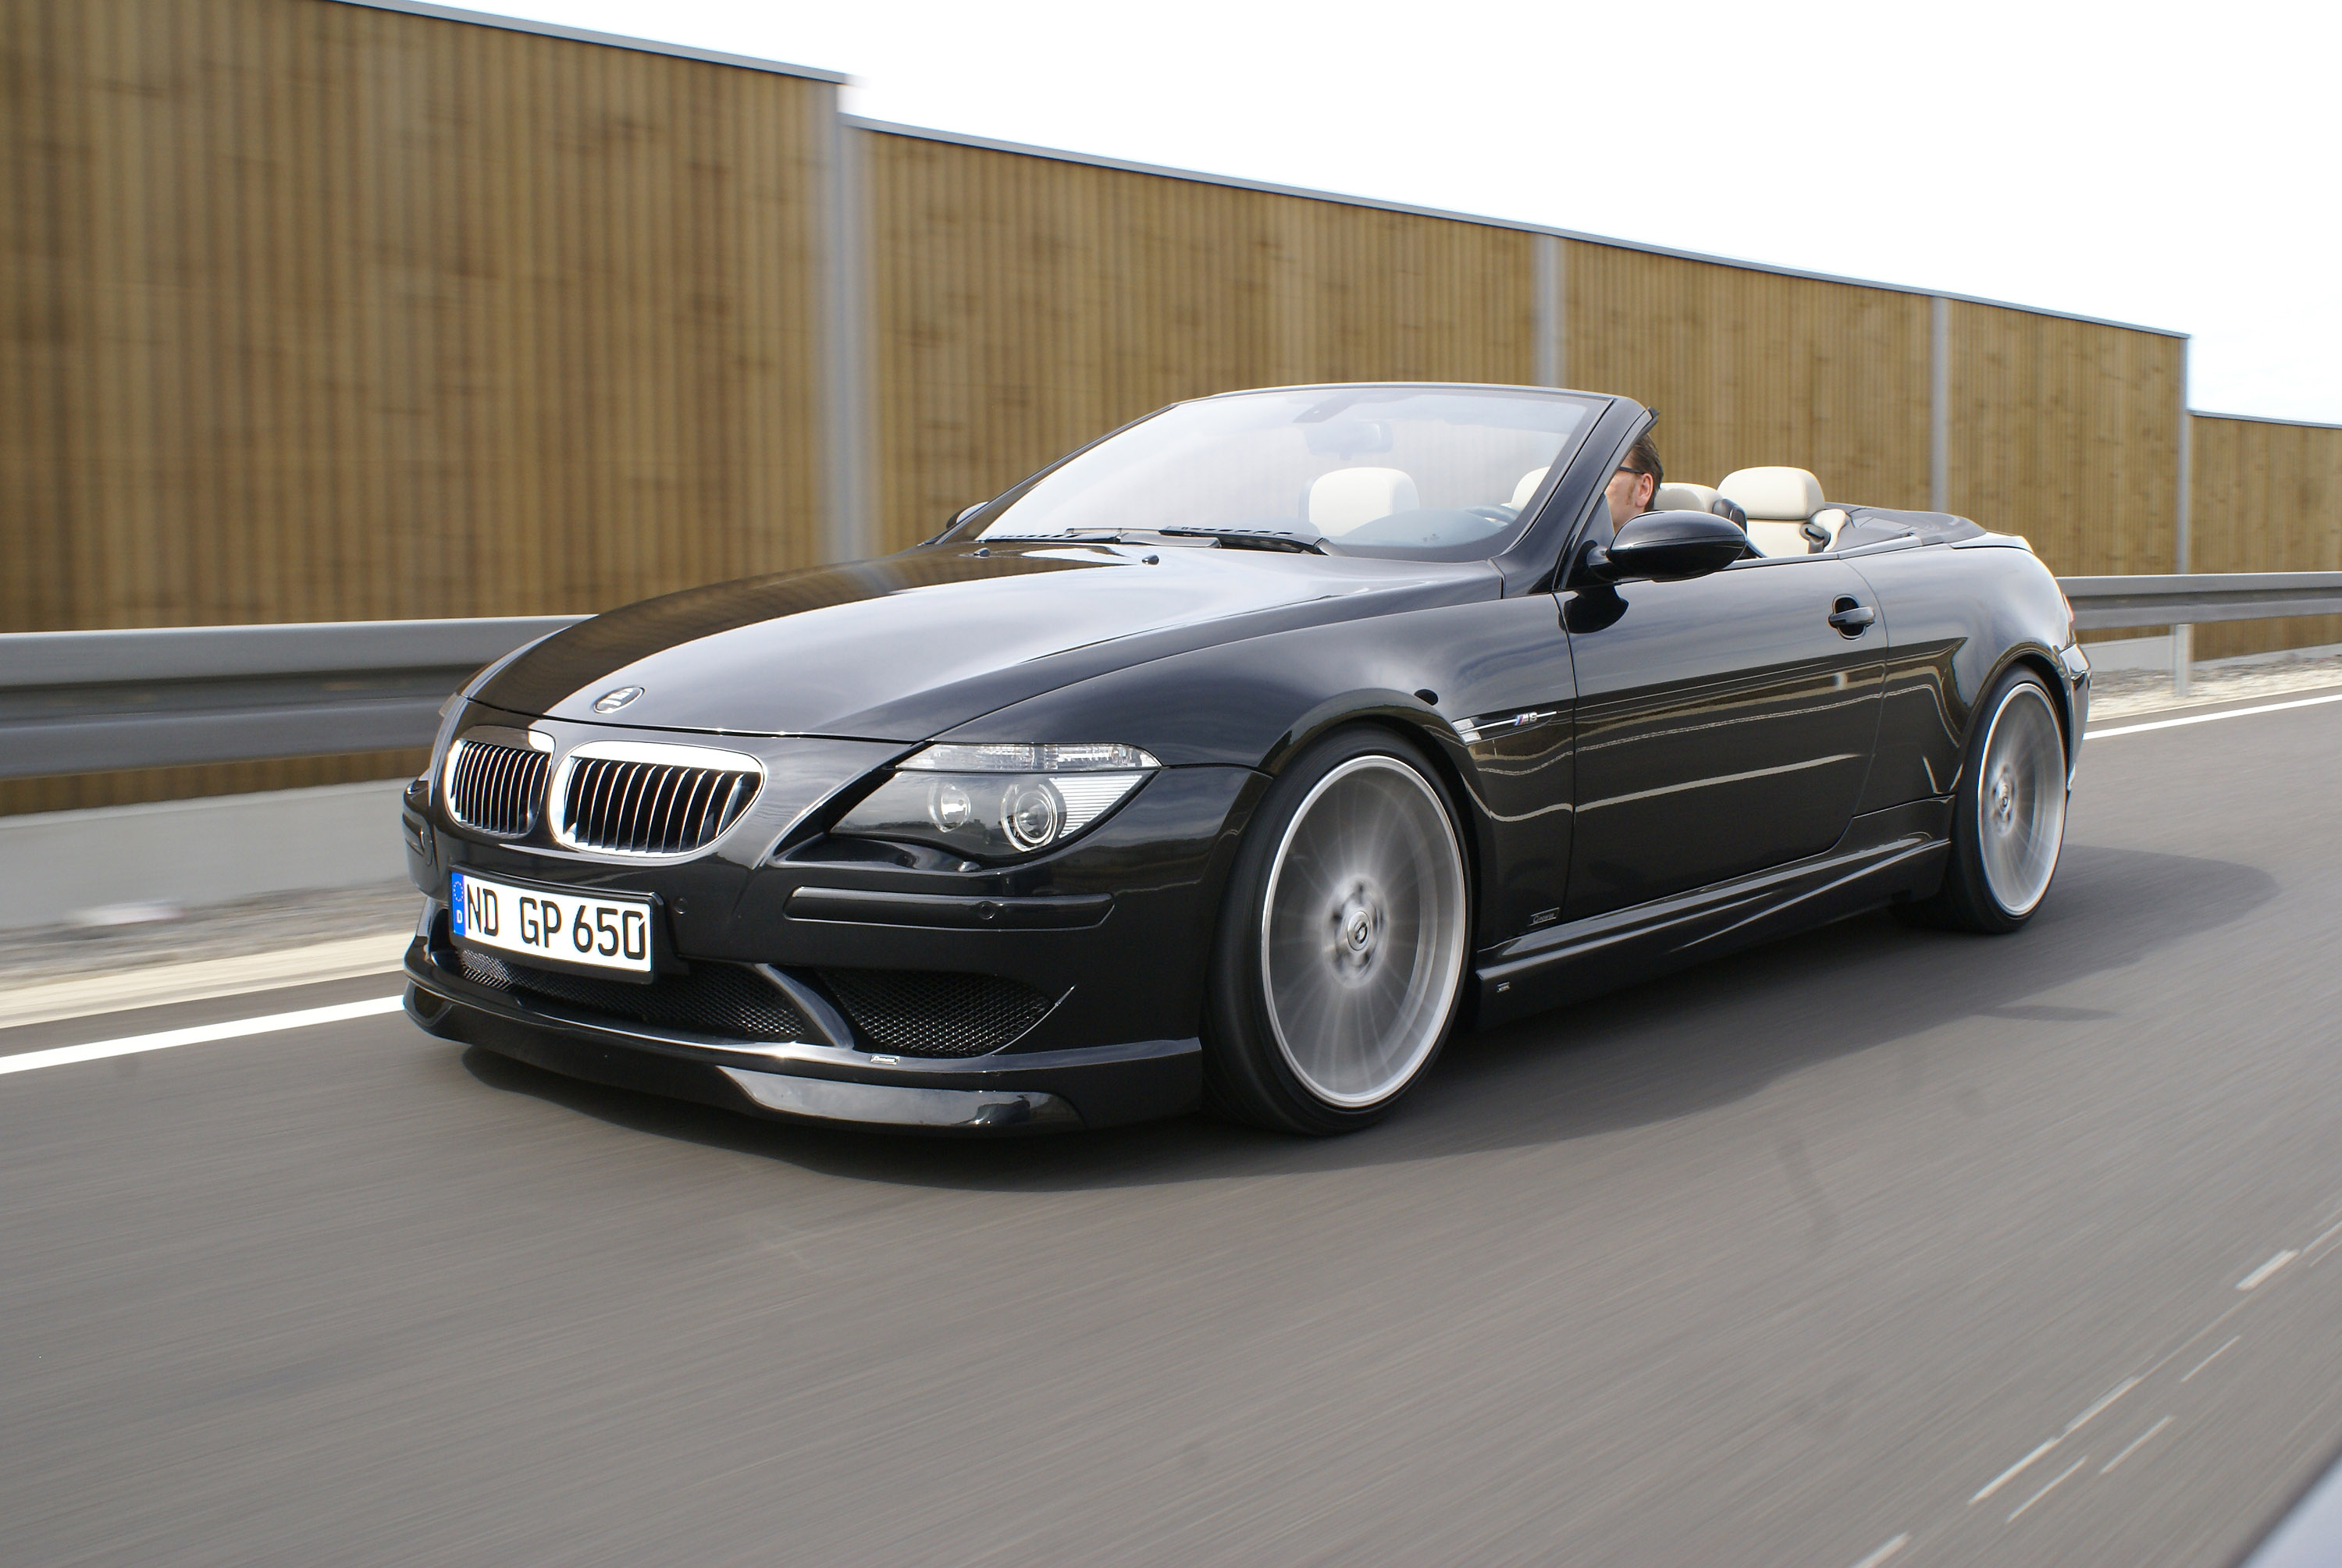 G Power Bmw M6 Hurricane Convertible Picture 17451